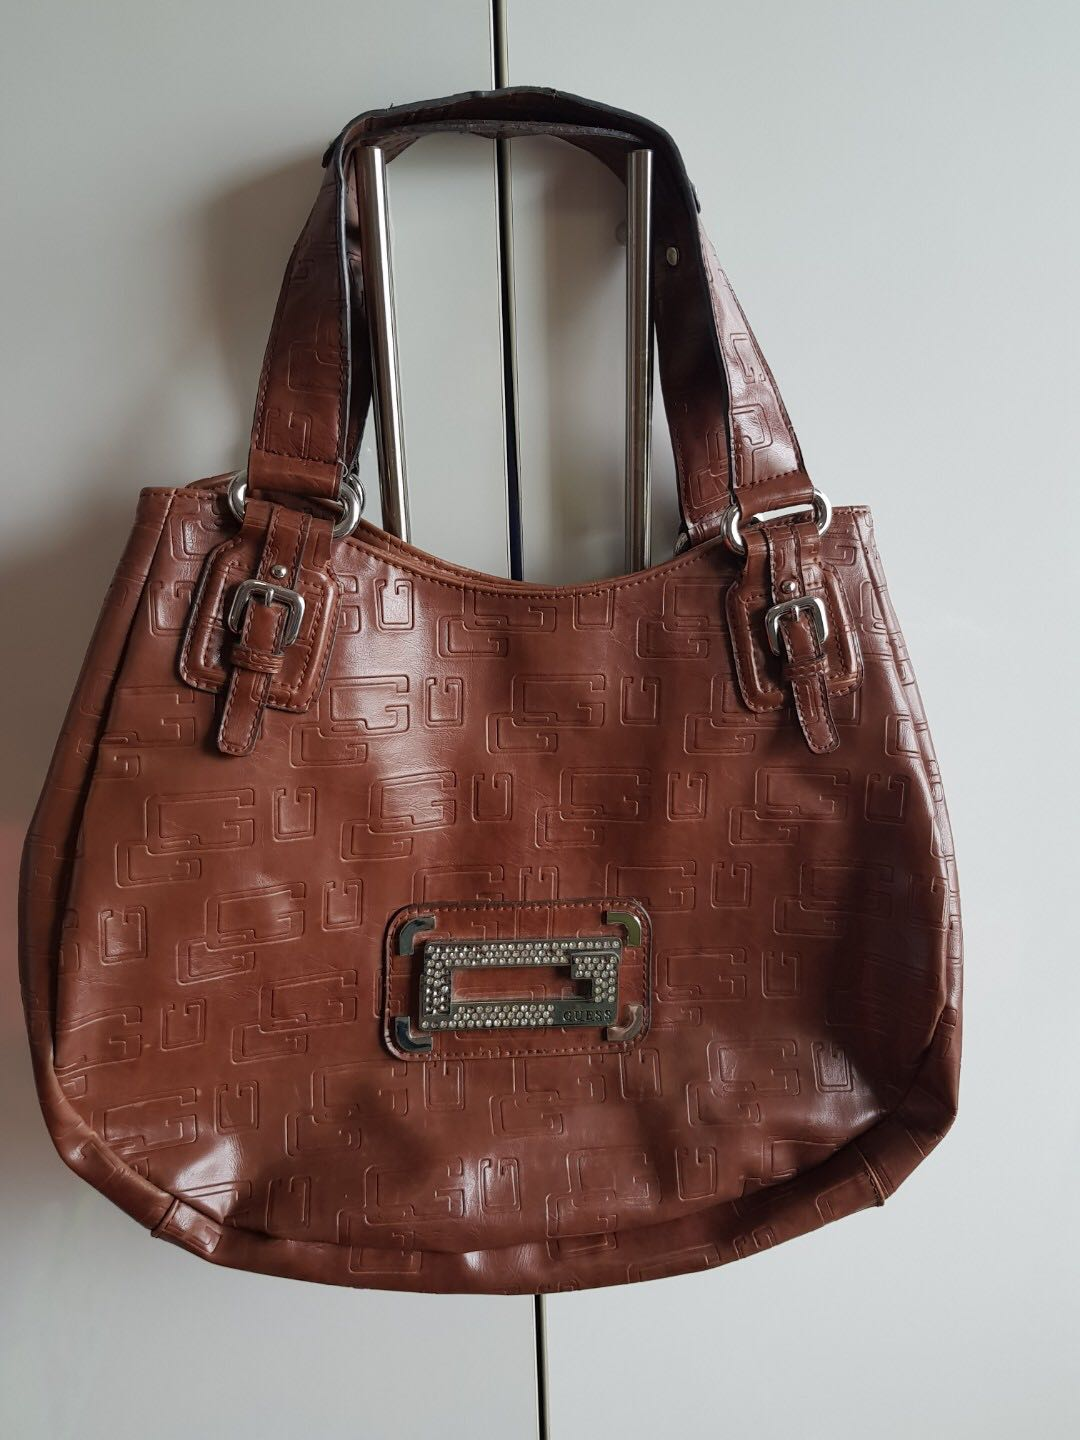 Authentic - Guess brown leather bag (FREE Shipping within Metro ... aeebf29fc2b6e